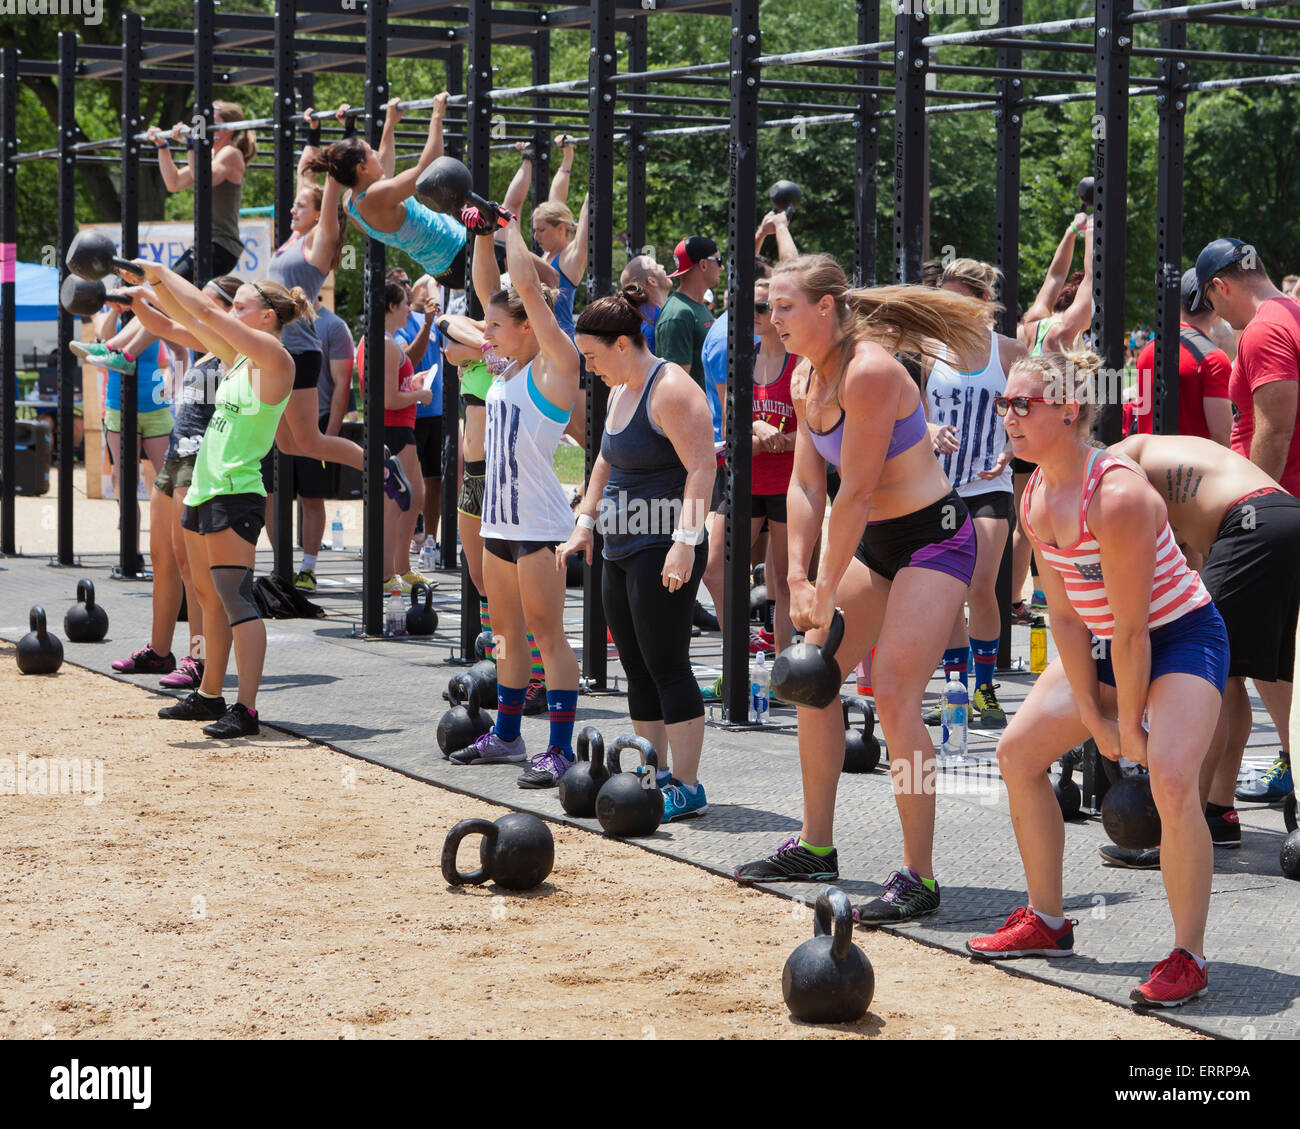 Crossfit trainees performing kettlebell lifts - USA - Stock Image